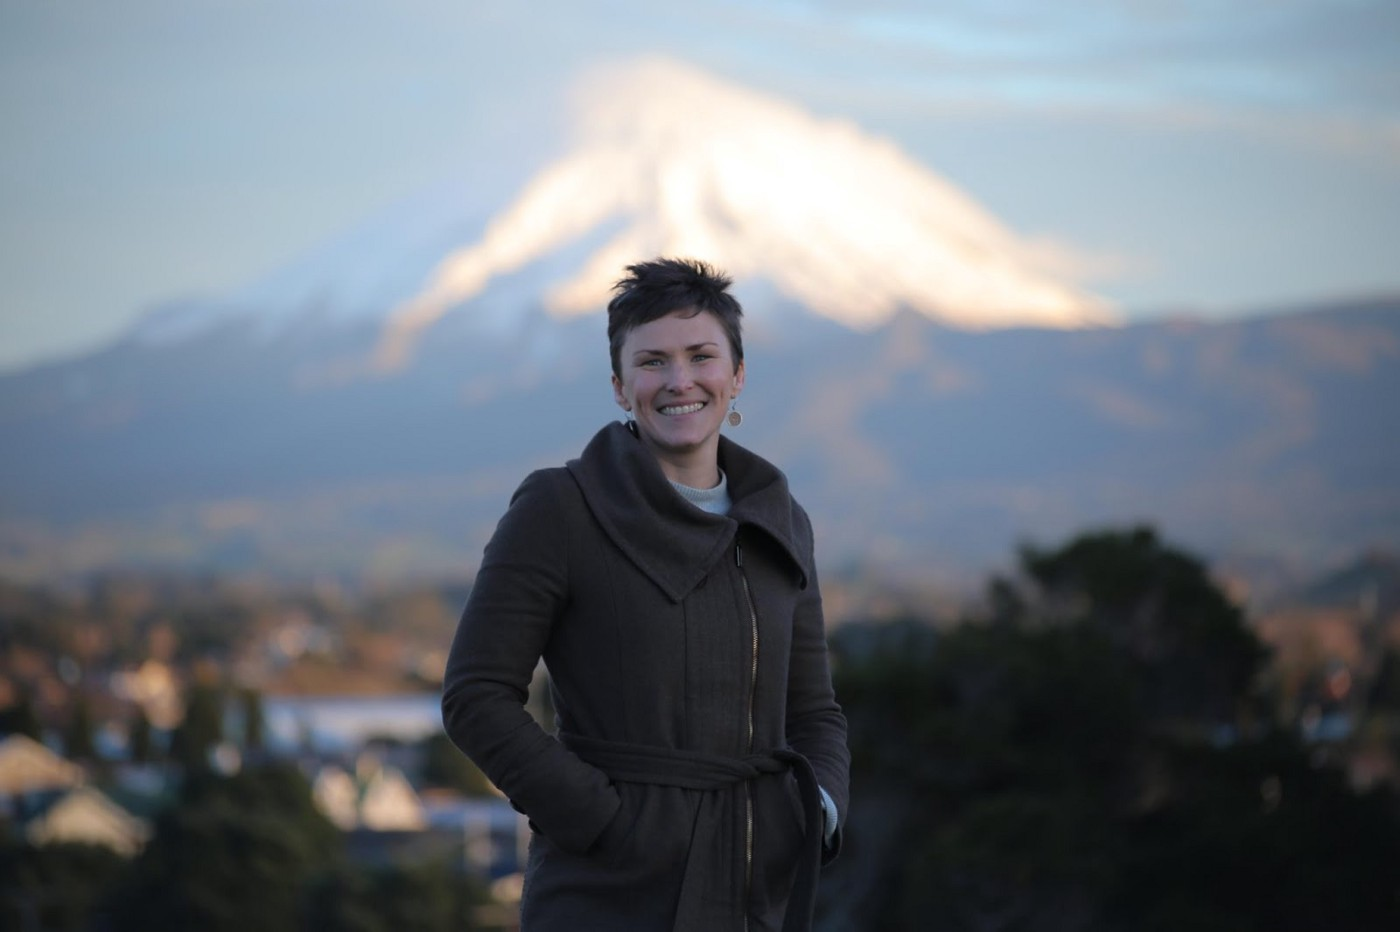 Amanda standing outside with the maunga (mountain) behind her at sunset